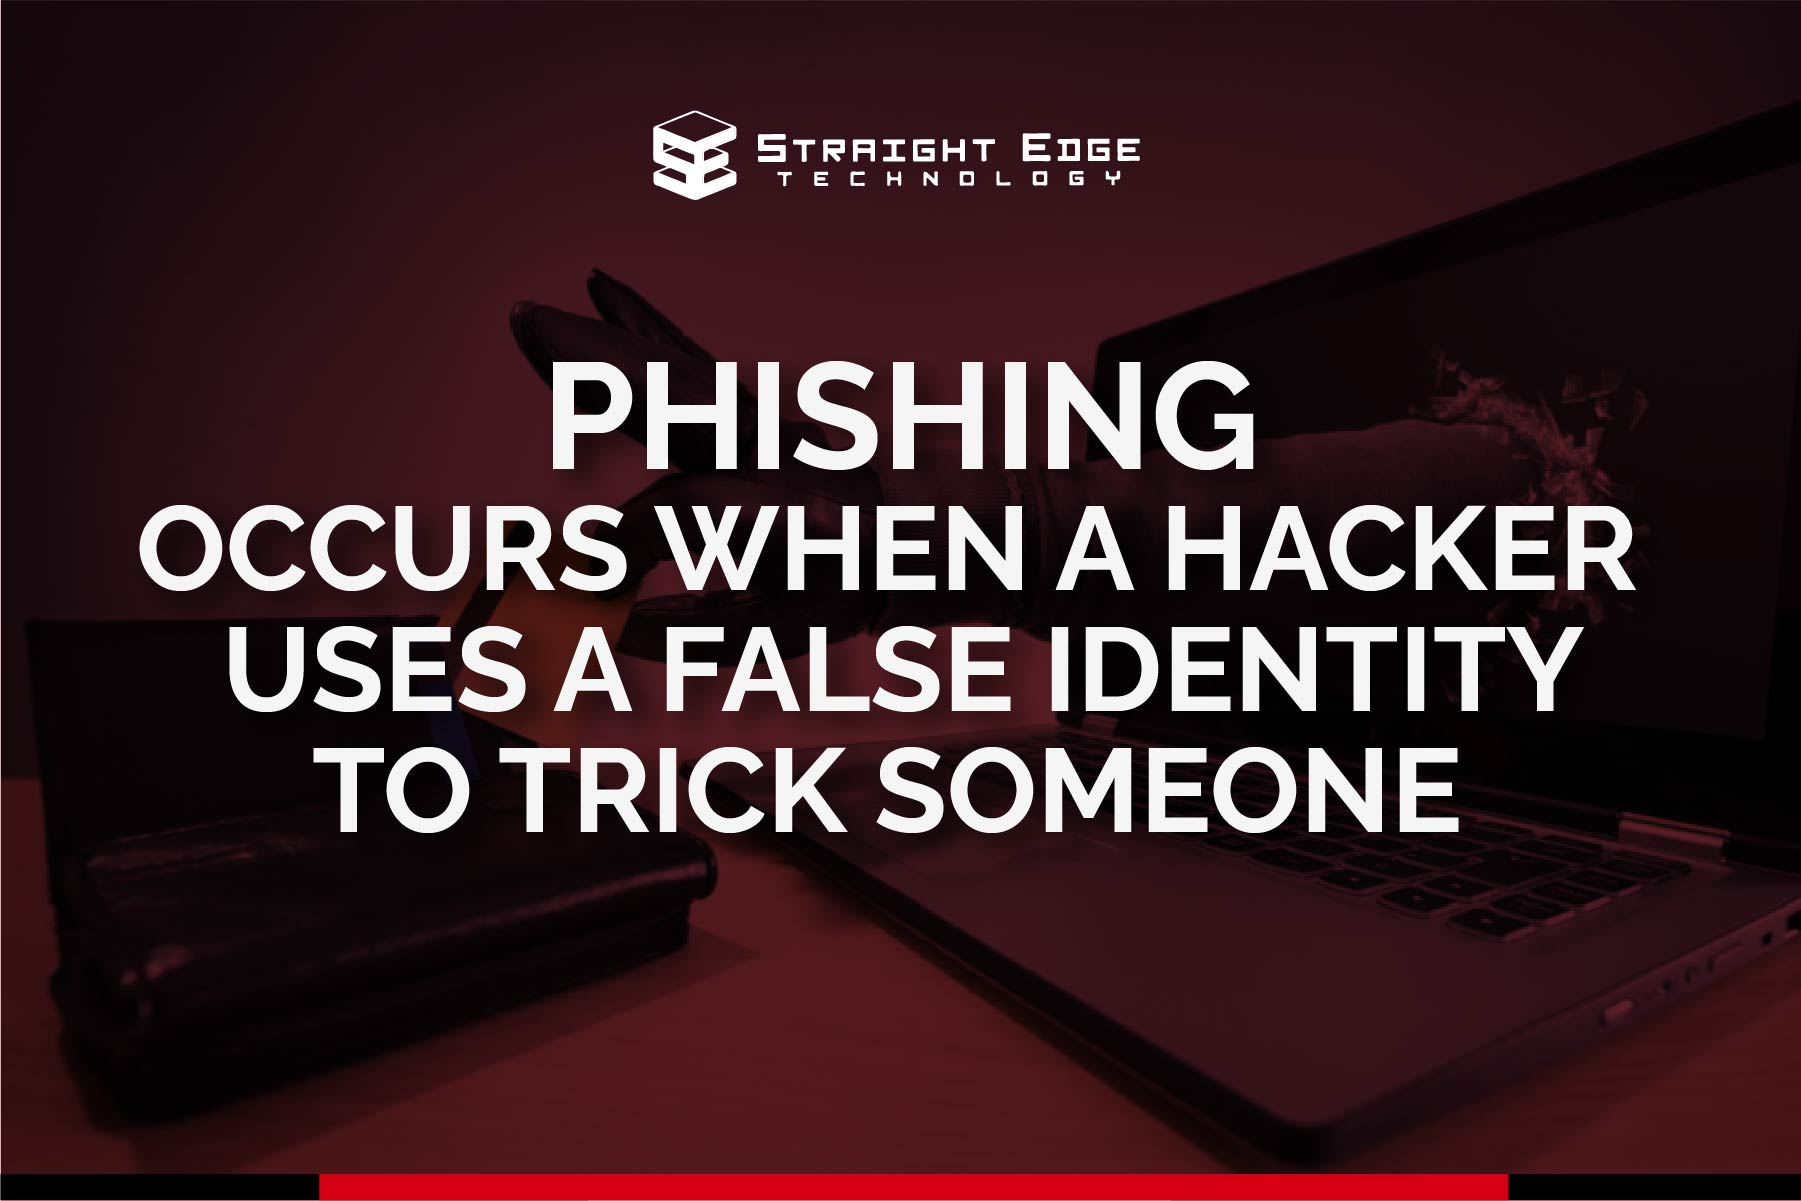 phishing occurs when a hacker uses a false identity to trick someone